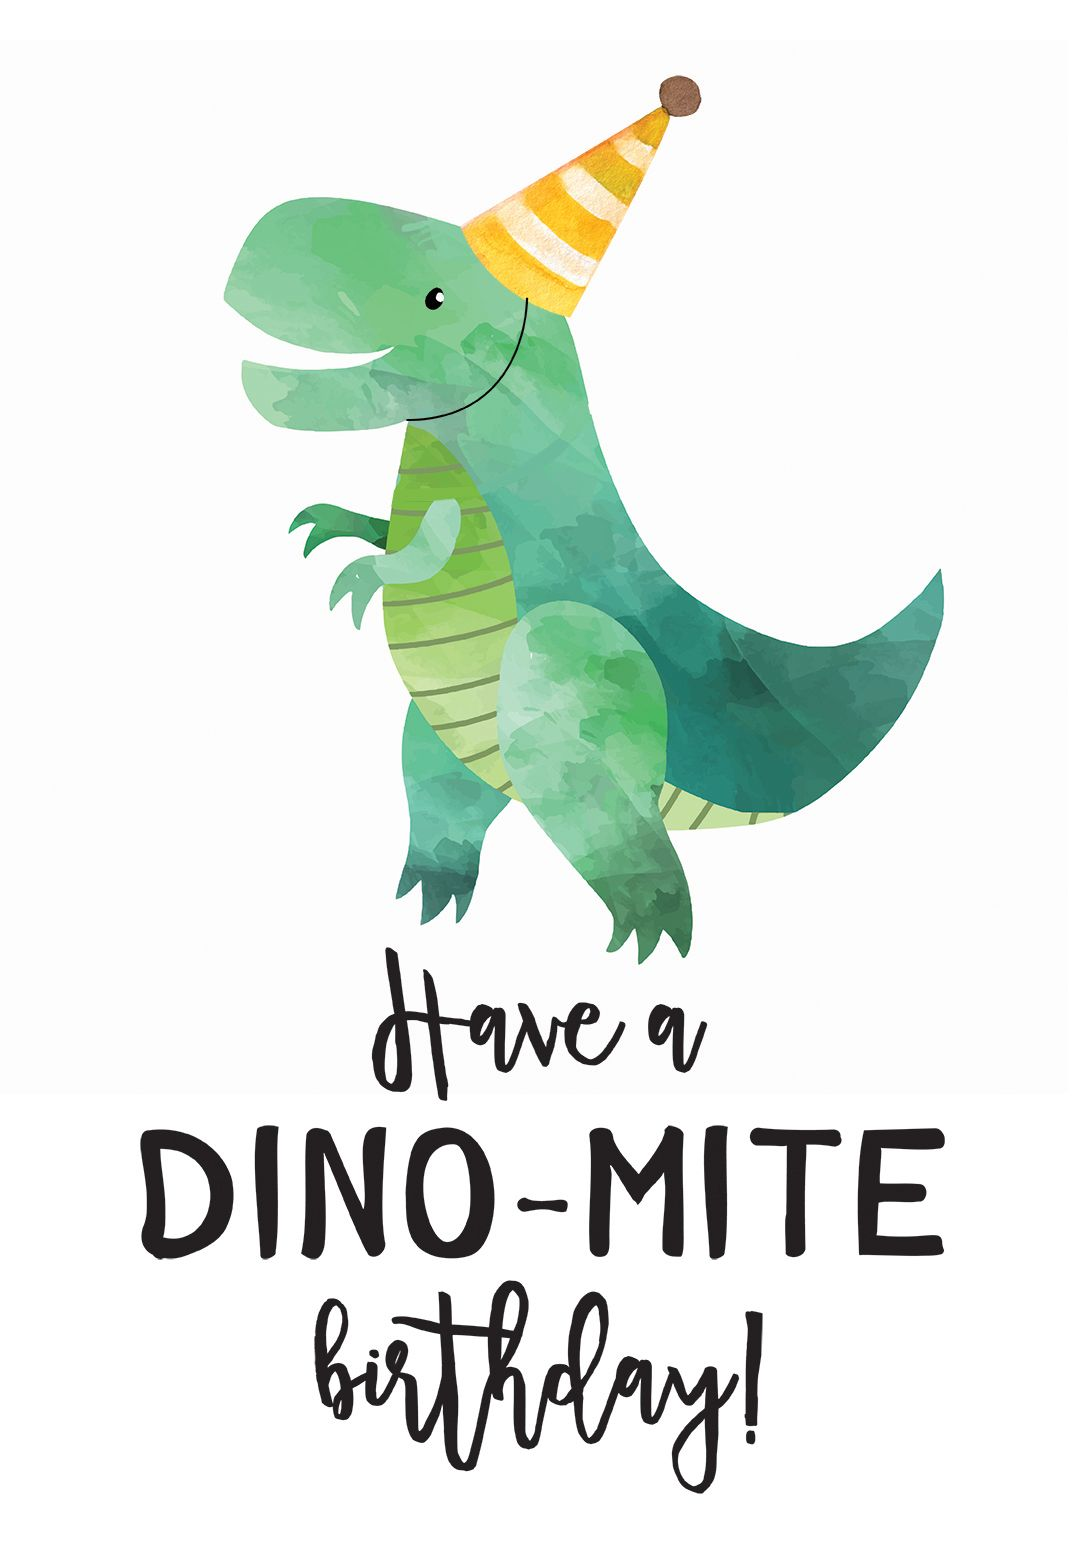 Dino mite birthday card free with images happy